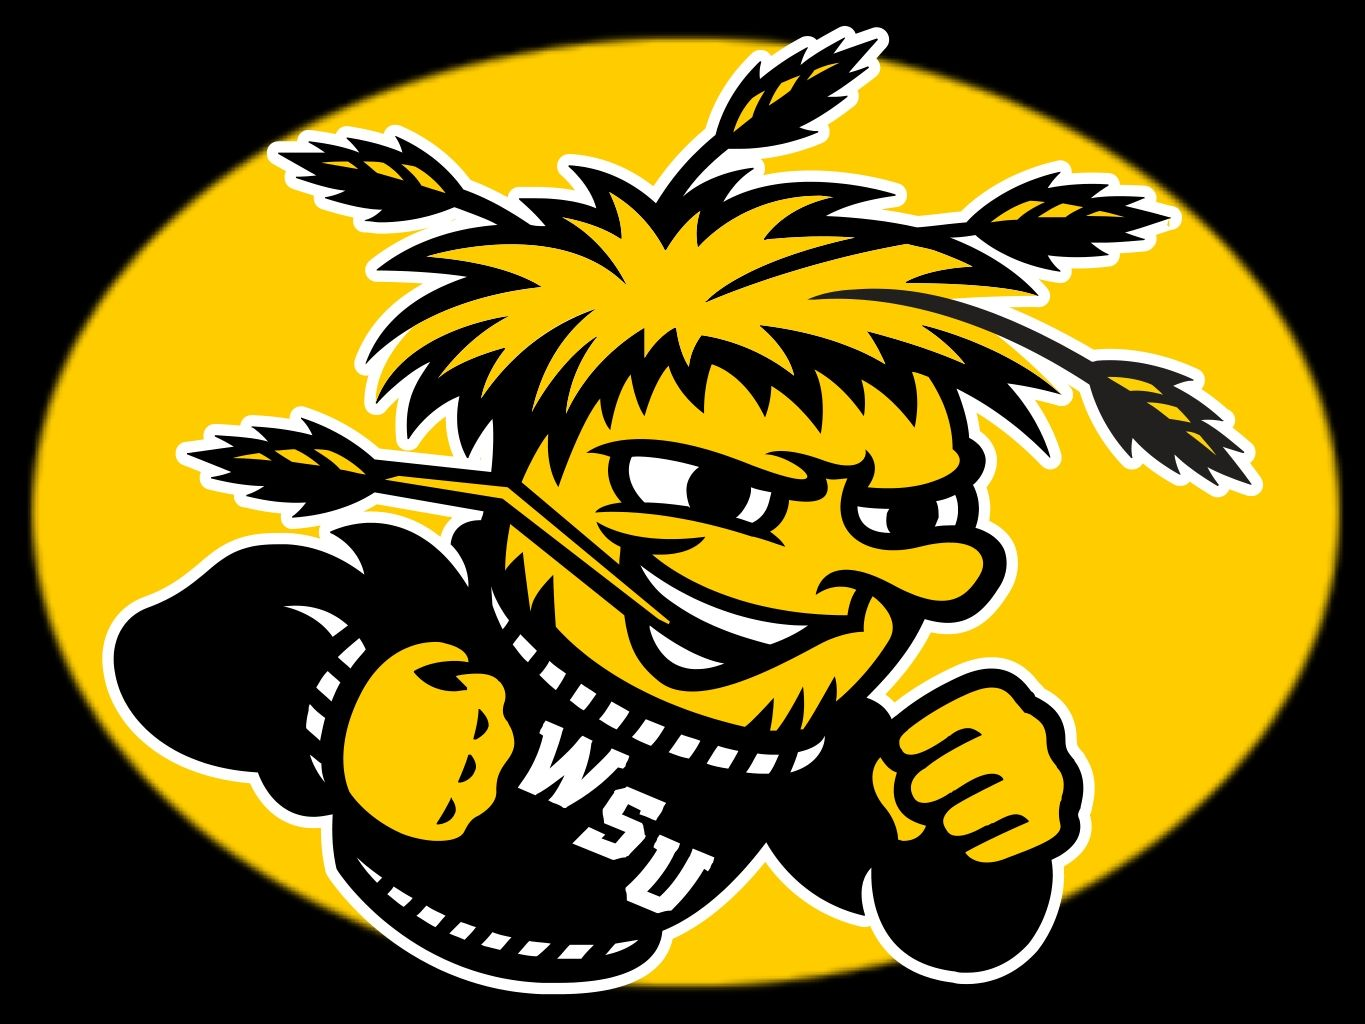 Wichita State joins UCF in American Athletic Conference